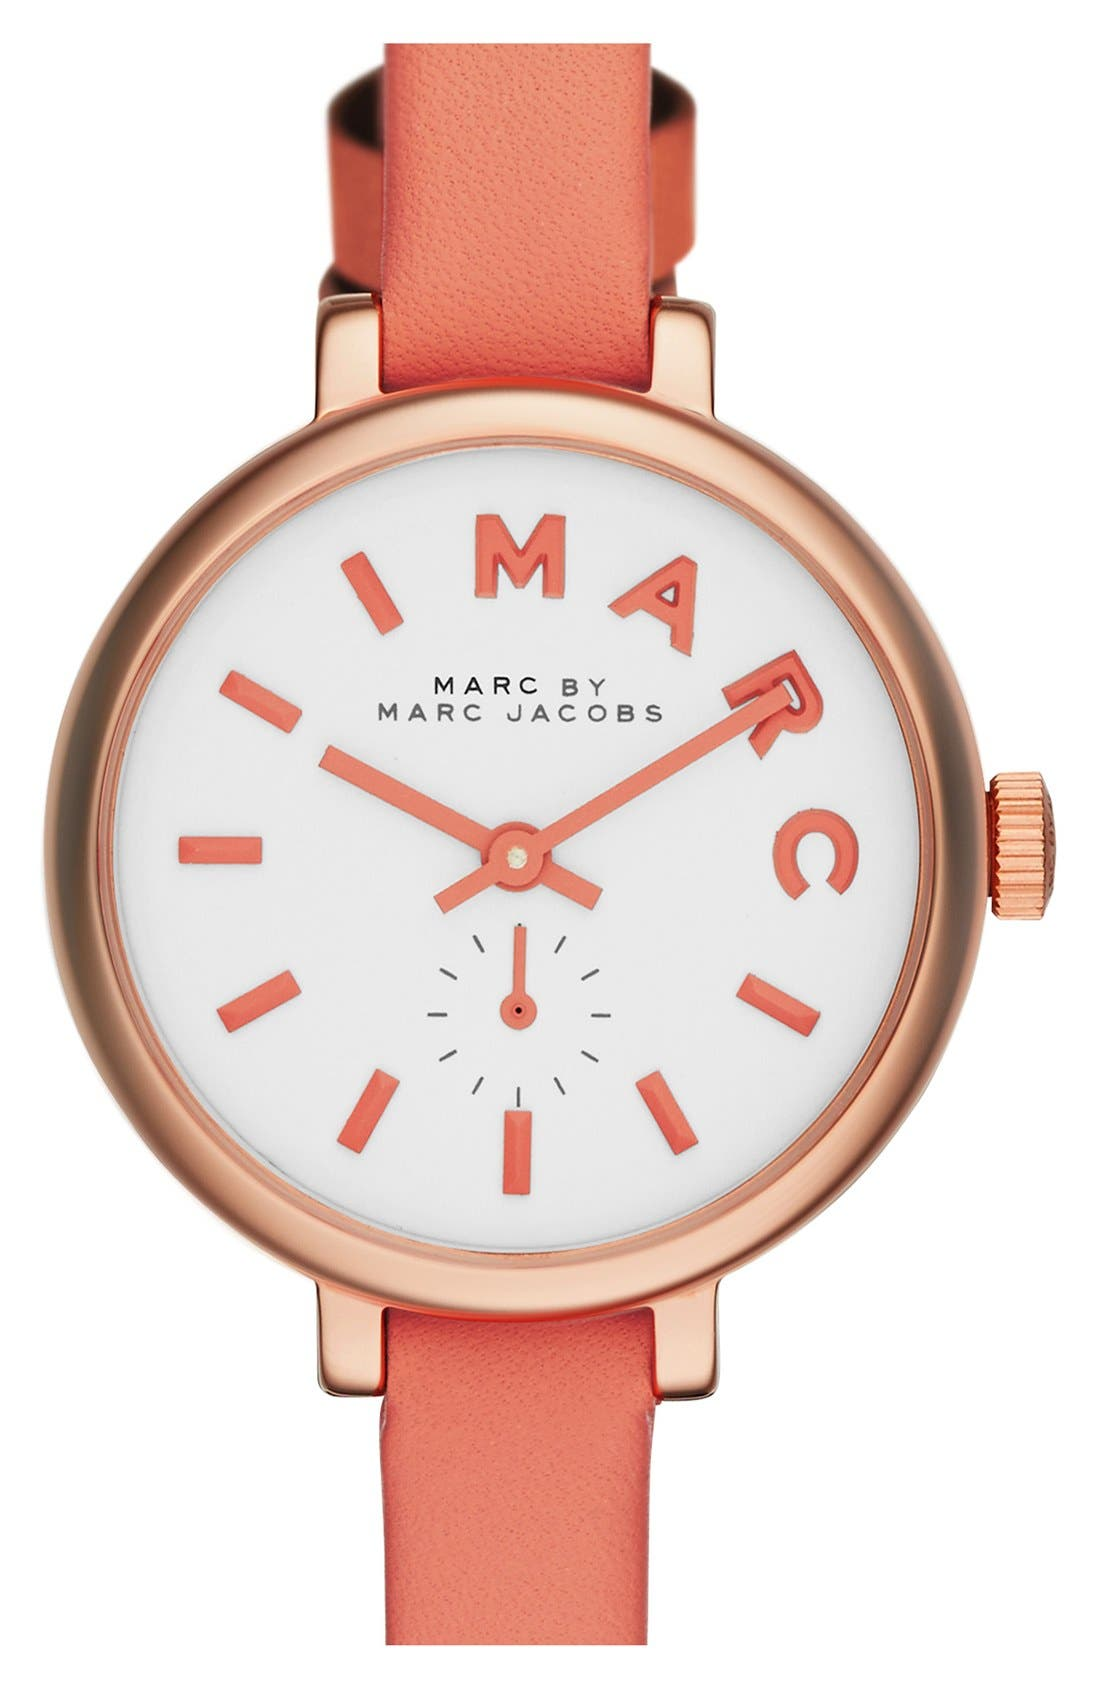 Main Image - MARC JACOBS 'Sally' Round Leather Strap Watch, 28mm